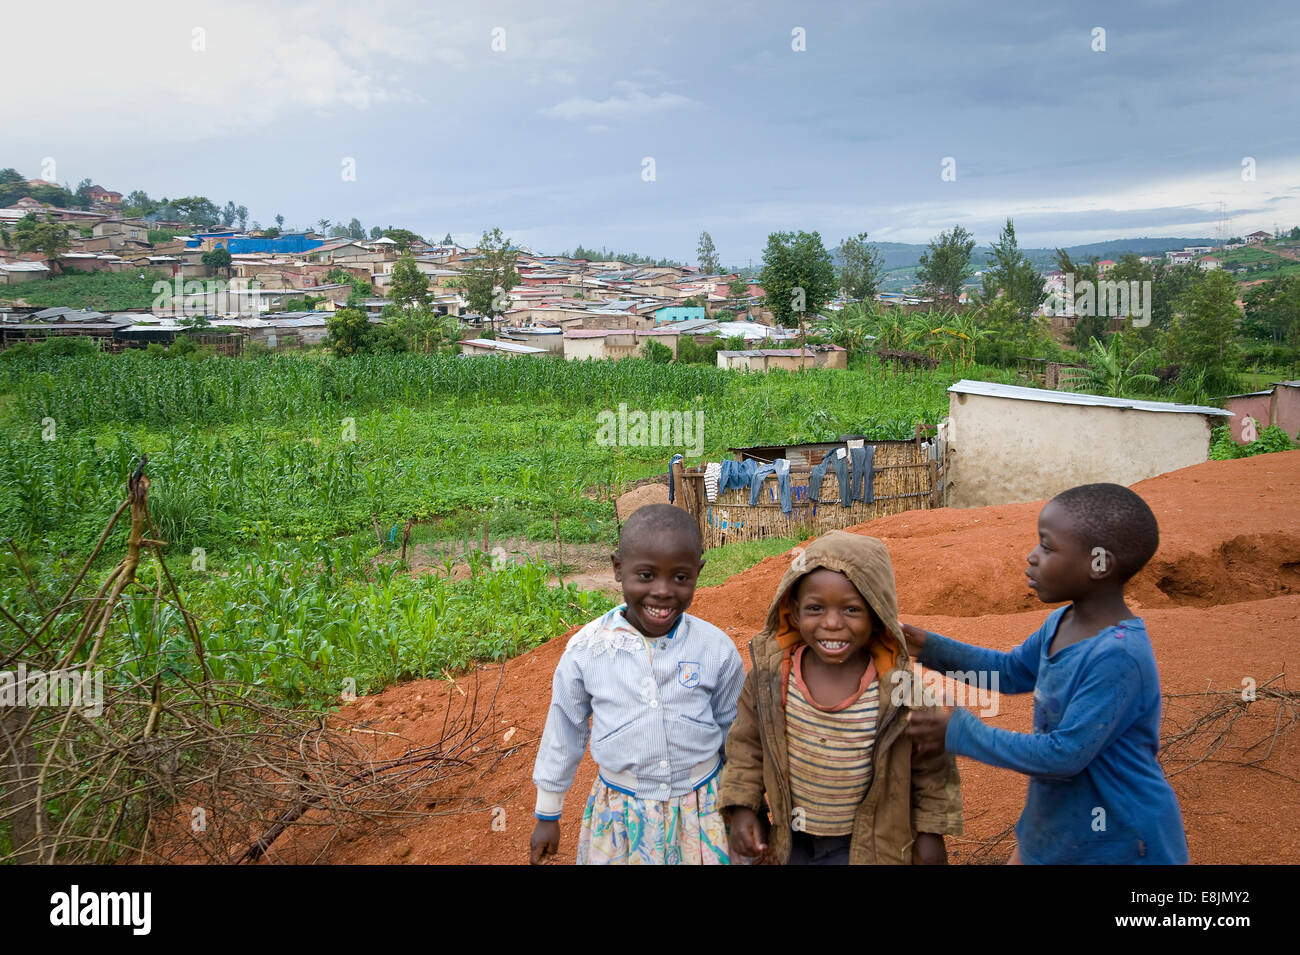 RWANDA, KIGALI: Kigali is a very green hilly city with simple mud and stone houses. - Stock Image